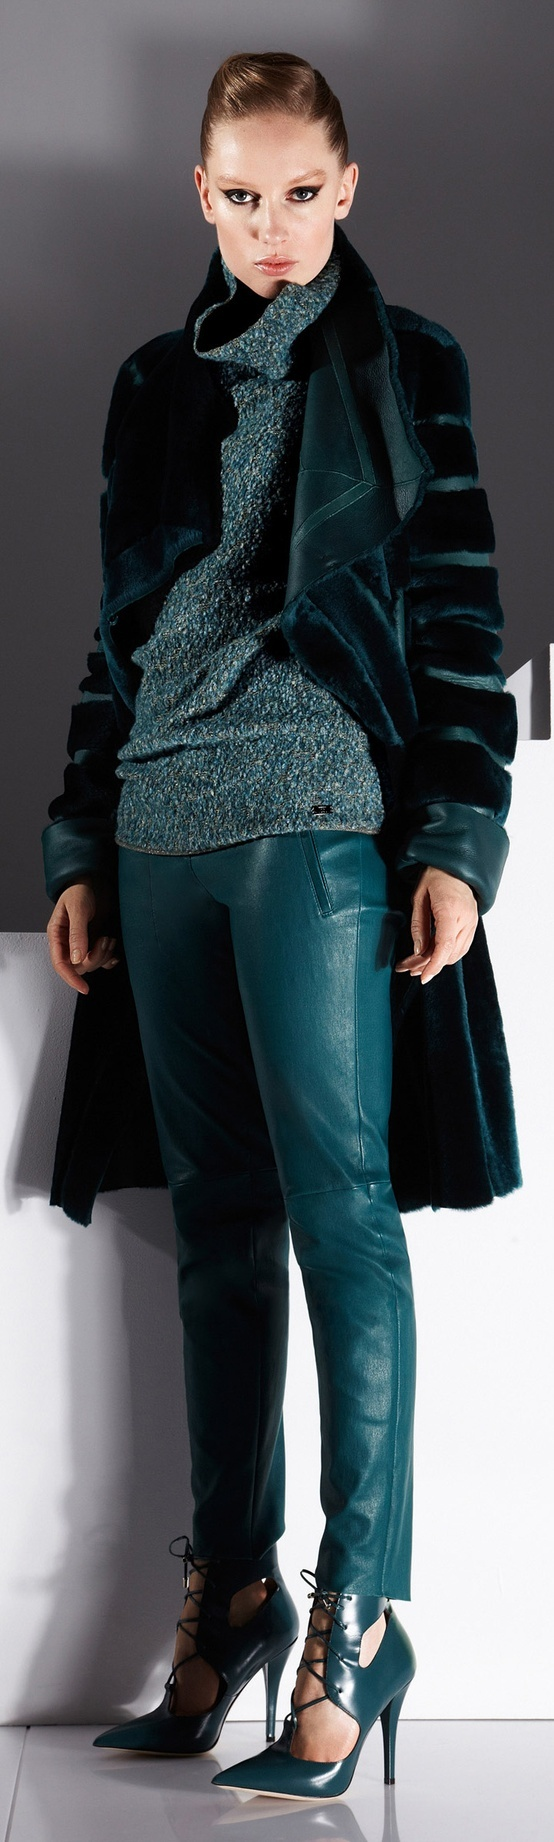 Teal green Escada coat, sweater, pants, stilettos